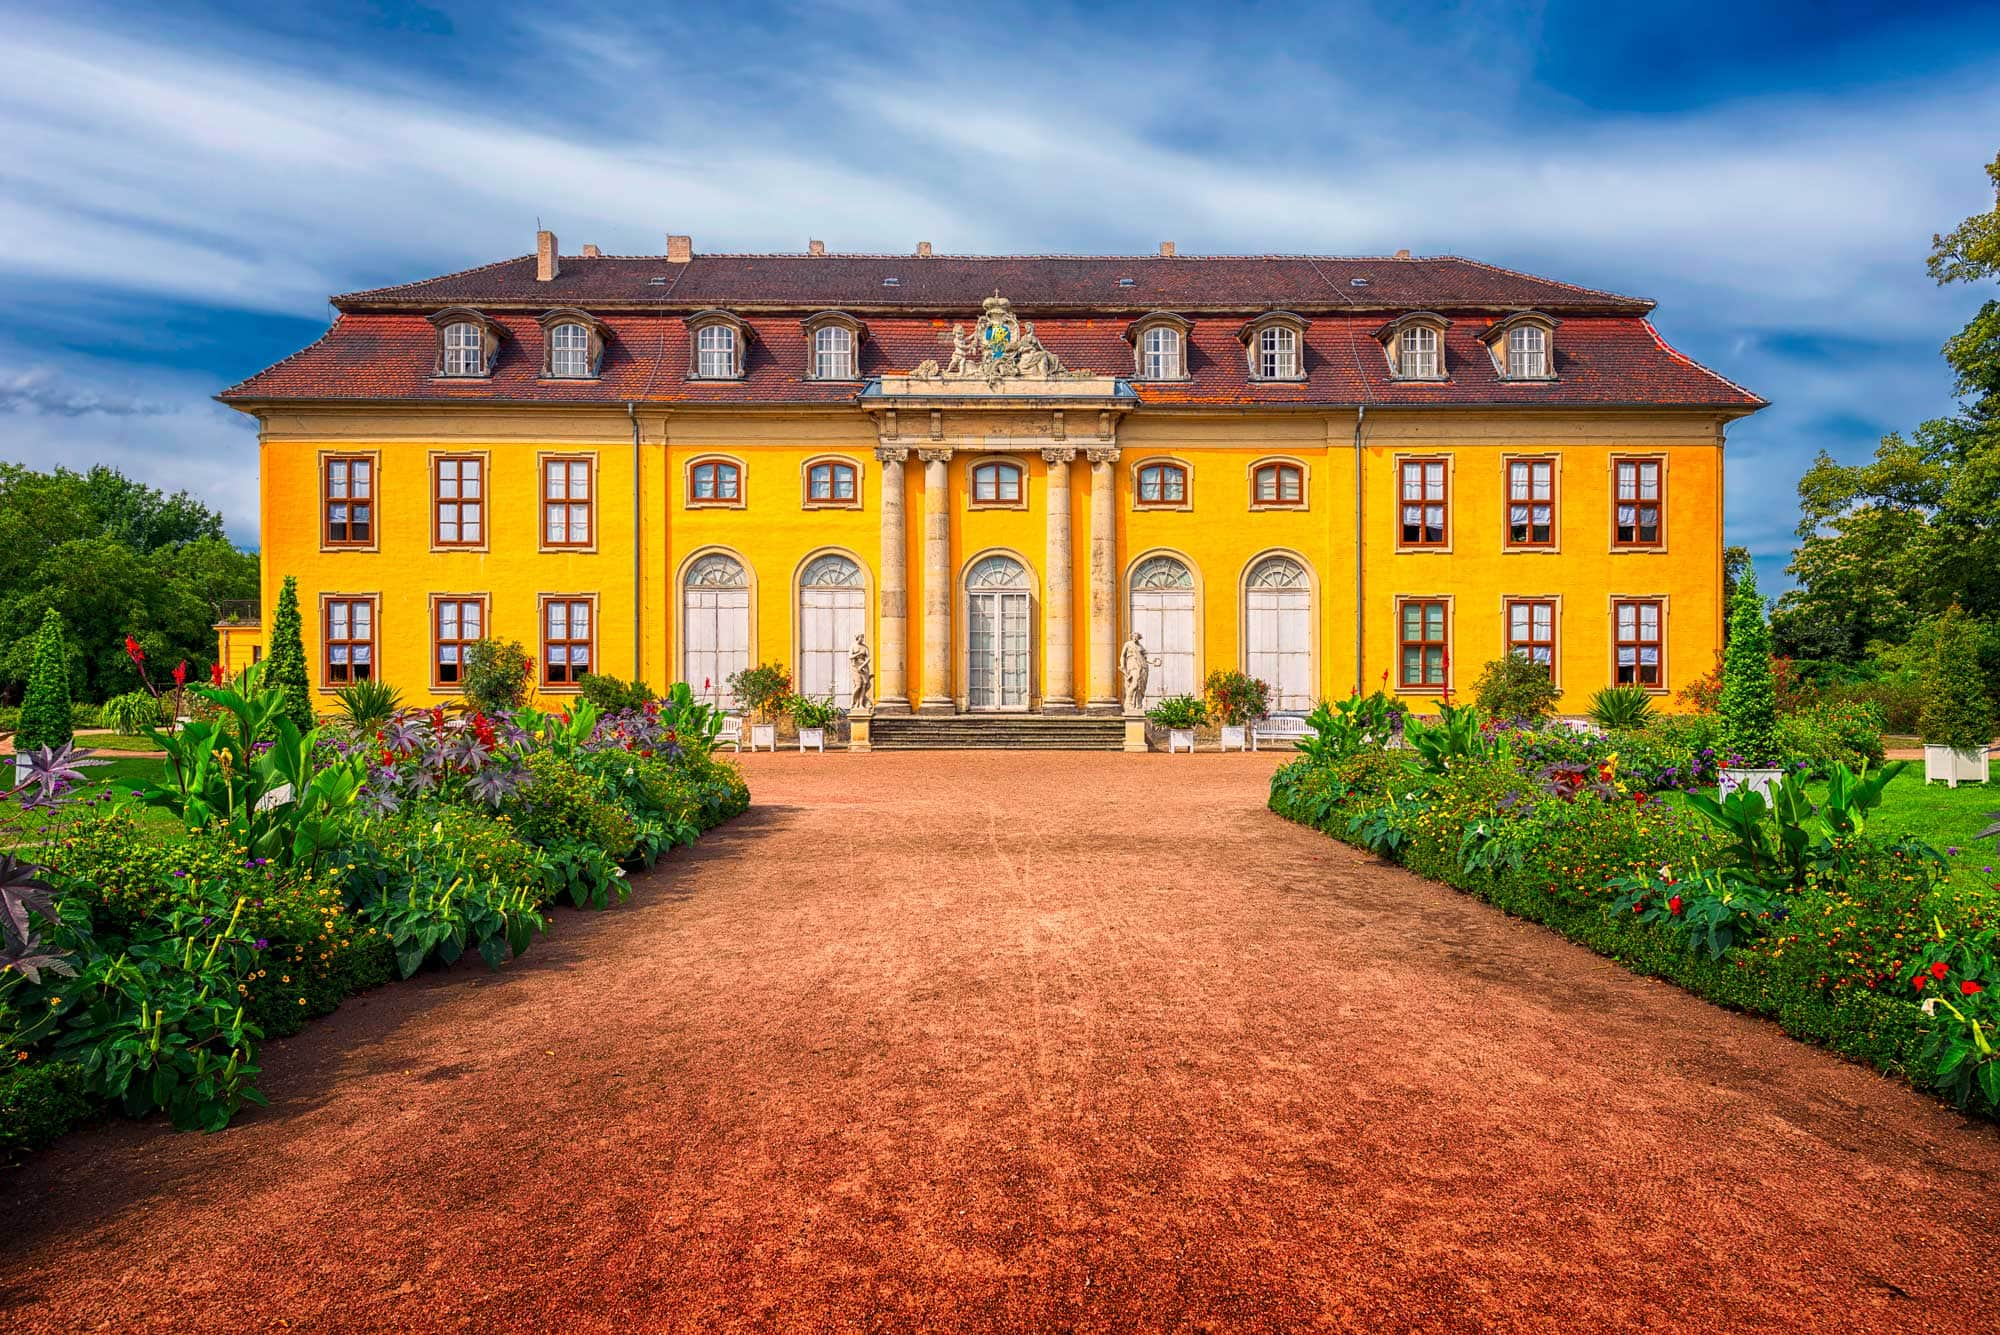 Mosigkau palace in Dessau (Germany) with surrounding gardens and clouds